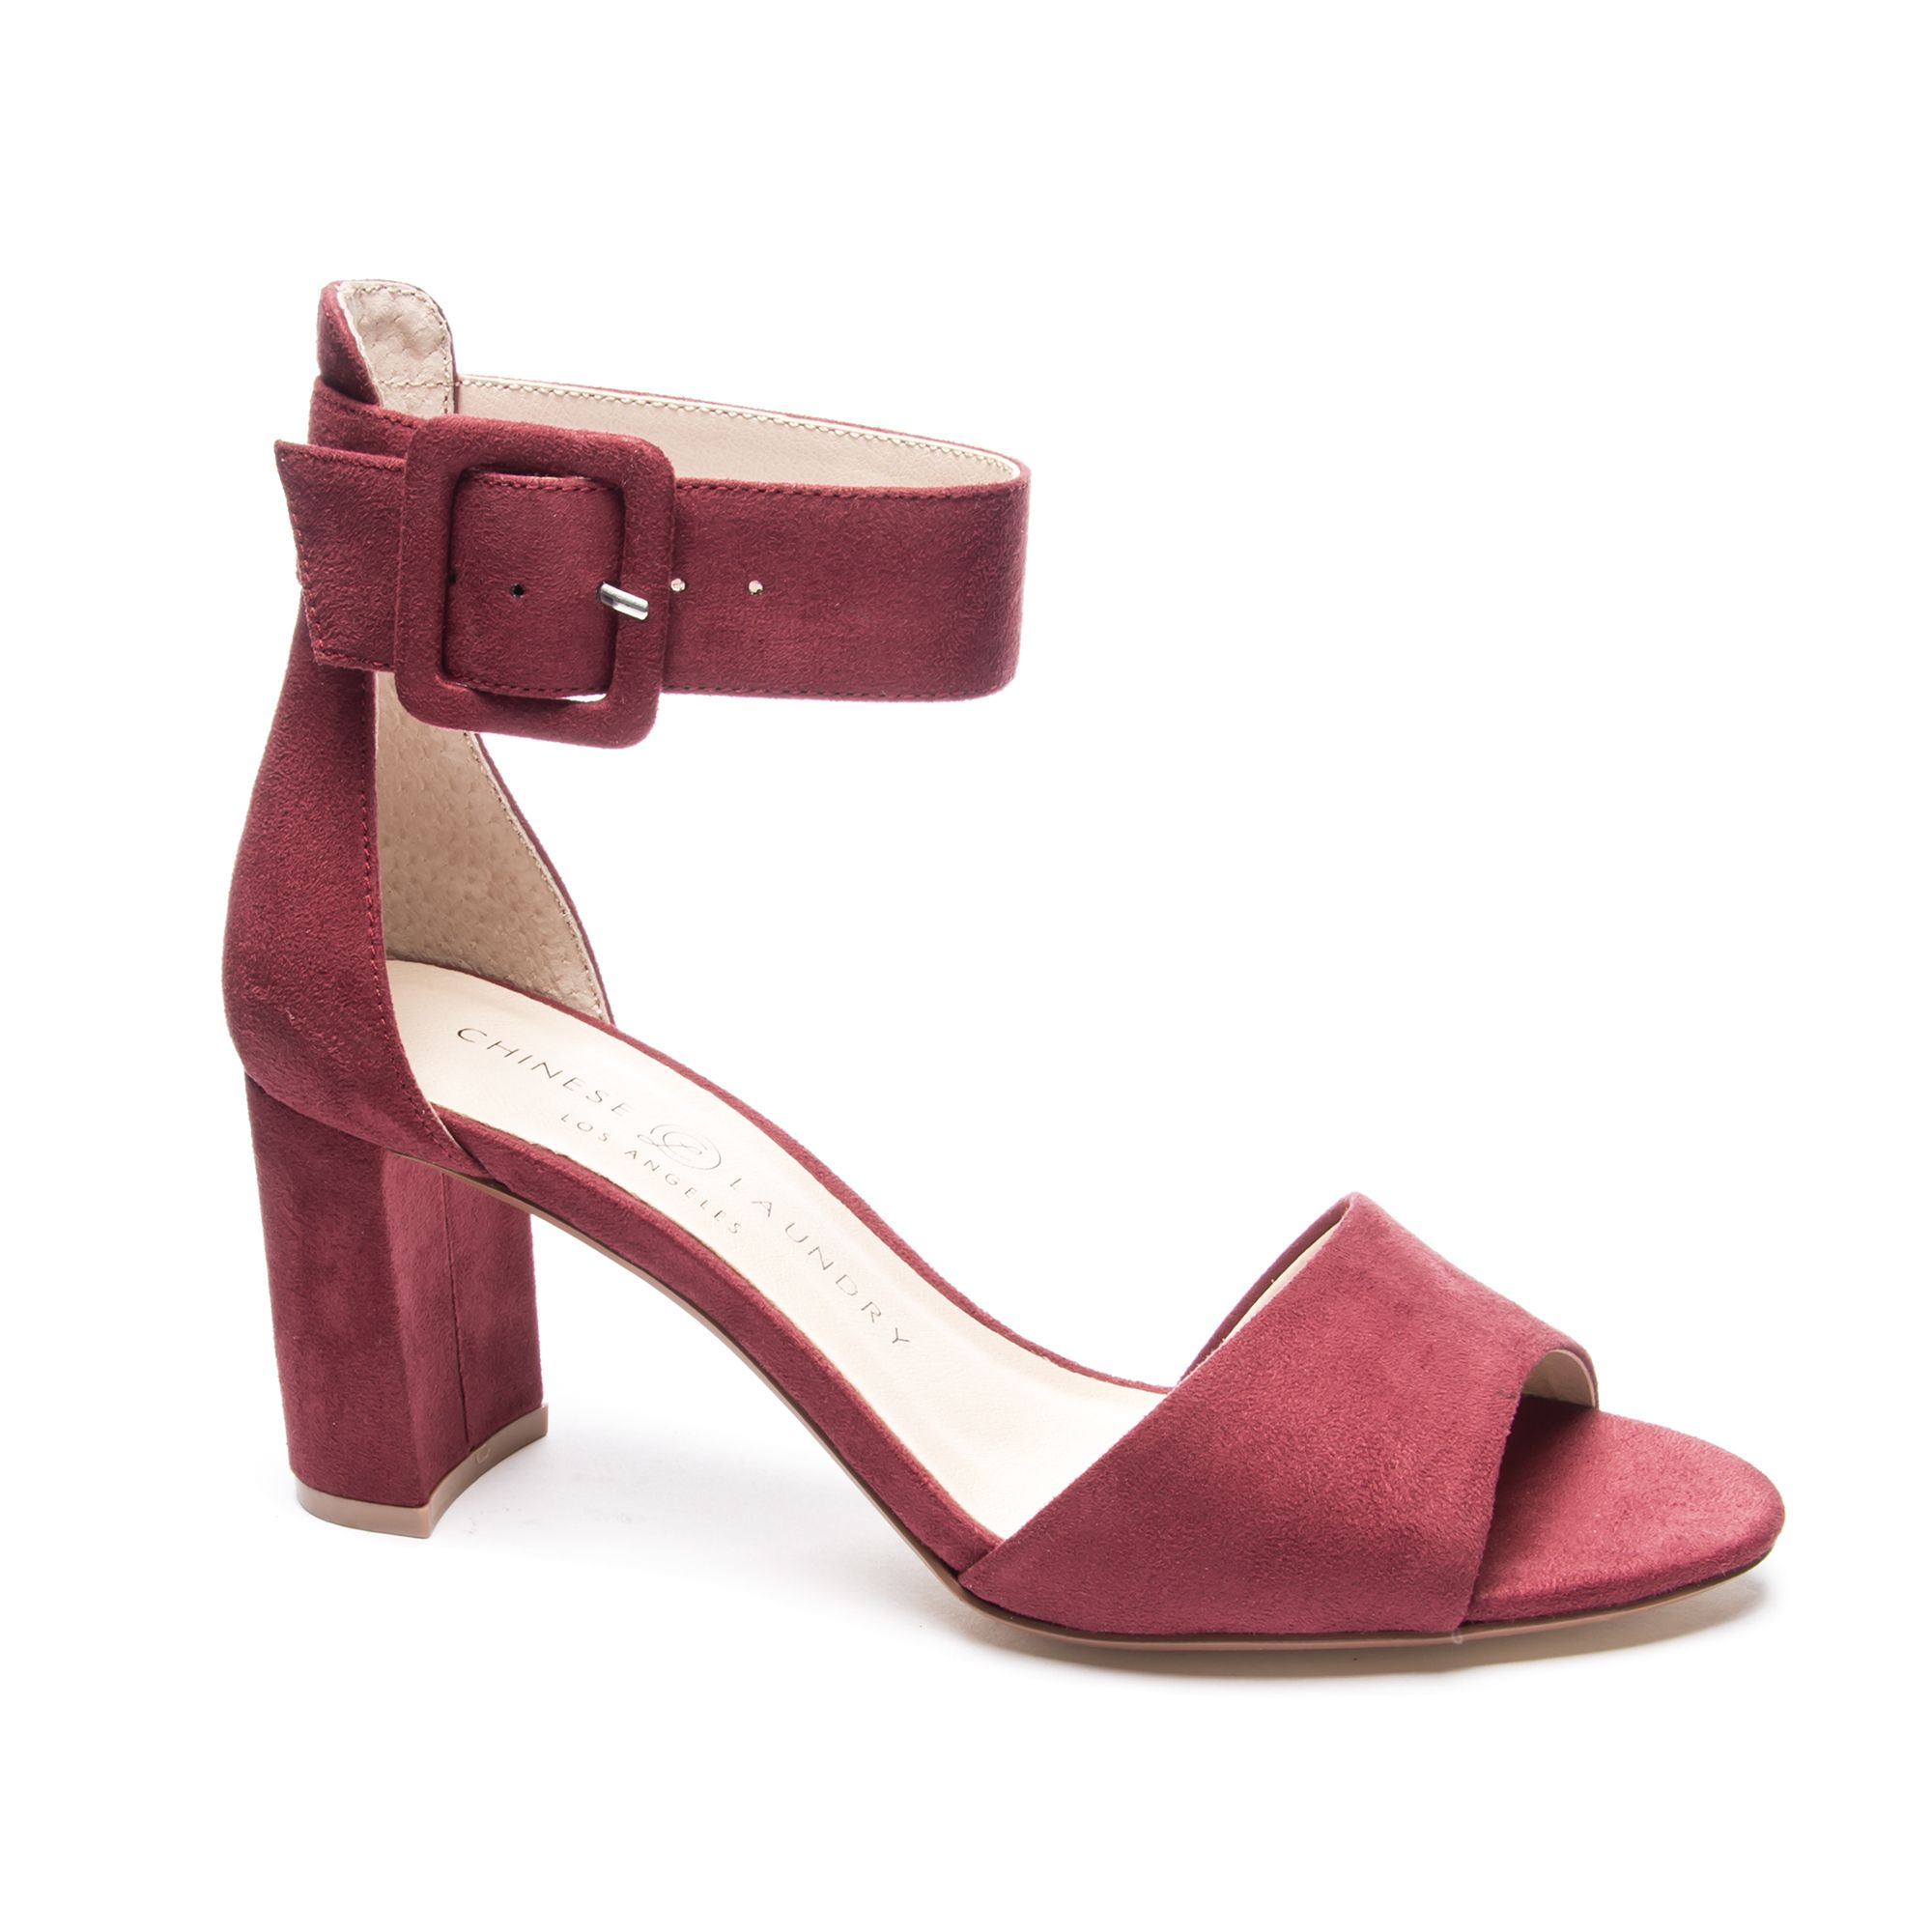 Rumor Suede Ankle Strap Block Heel Sandal Chinese Laundry With